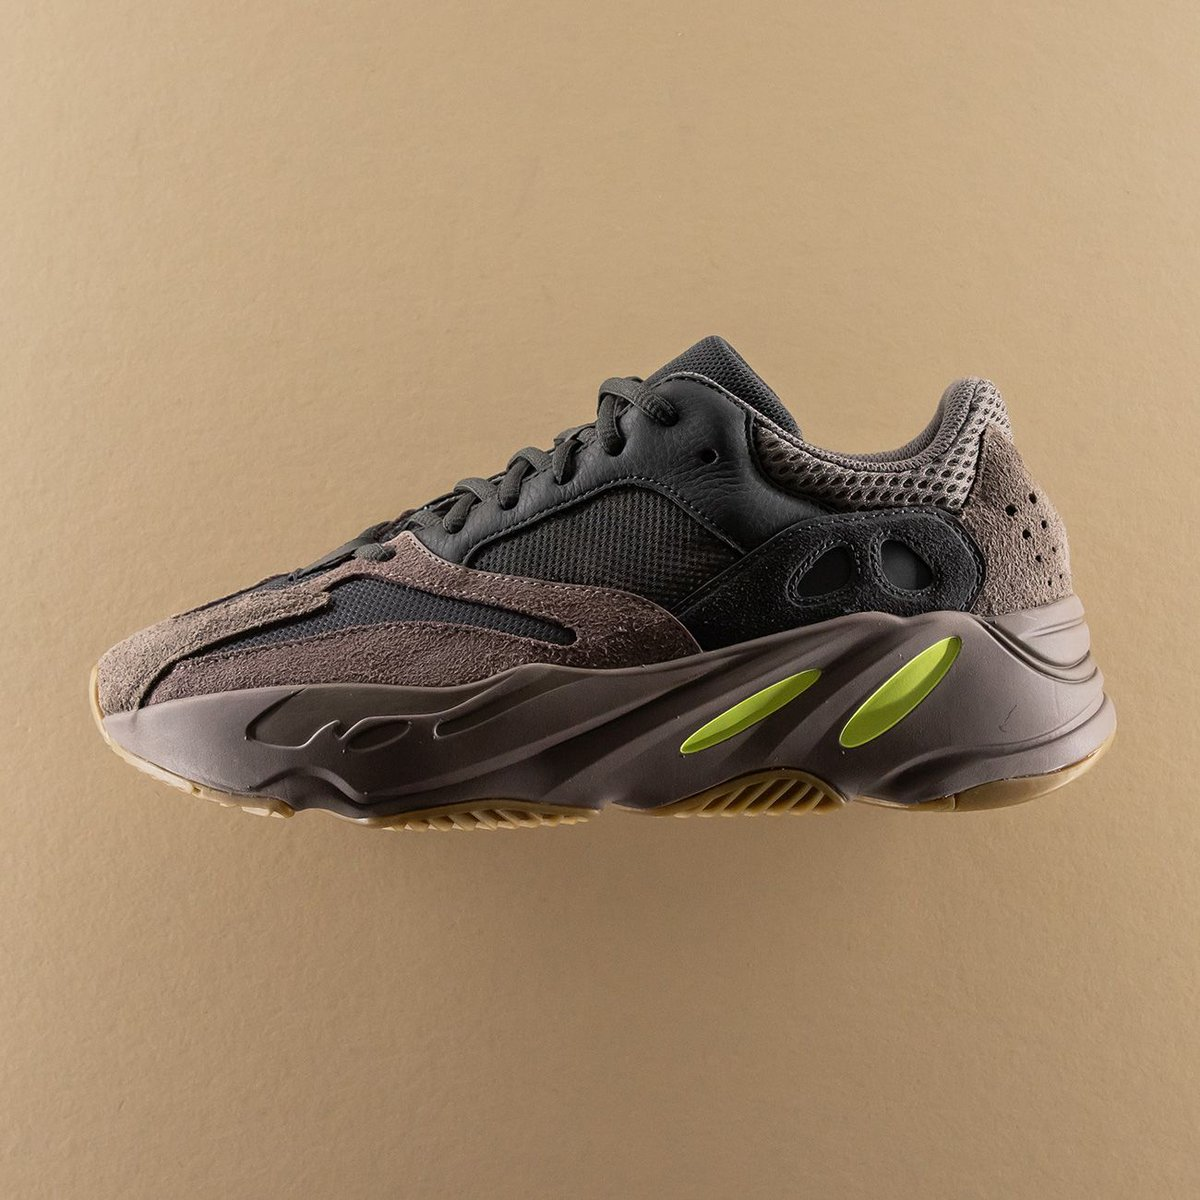 "3ab6ef173d2 The adidas Yeezy Boost 700 ""Mauve"" debuted in fall 2018 and is still one of  the bestselling styles from Kanye West on the market. Pick up your pair  today. ..."